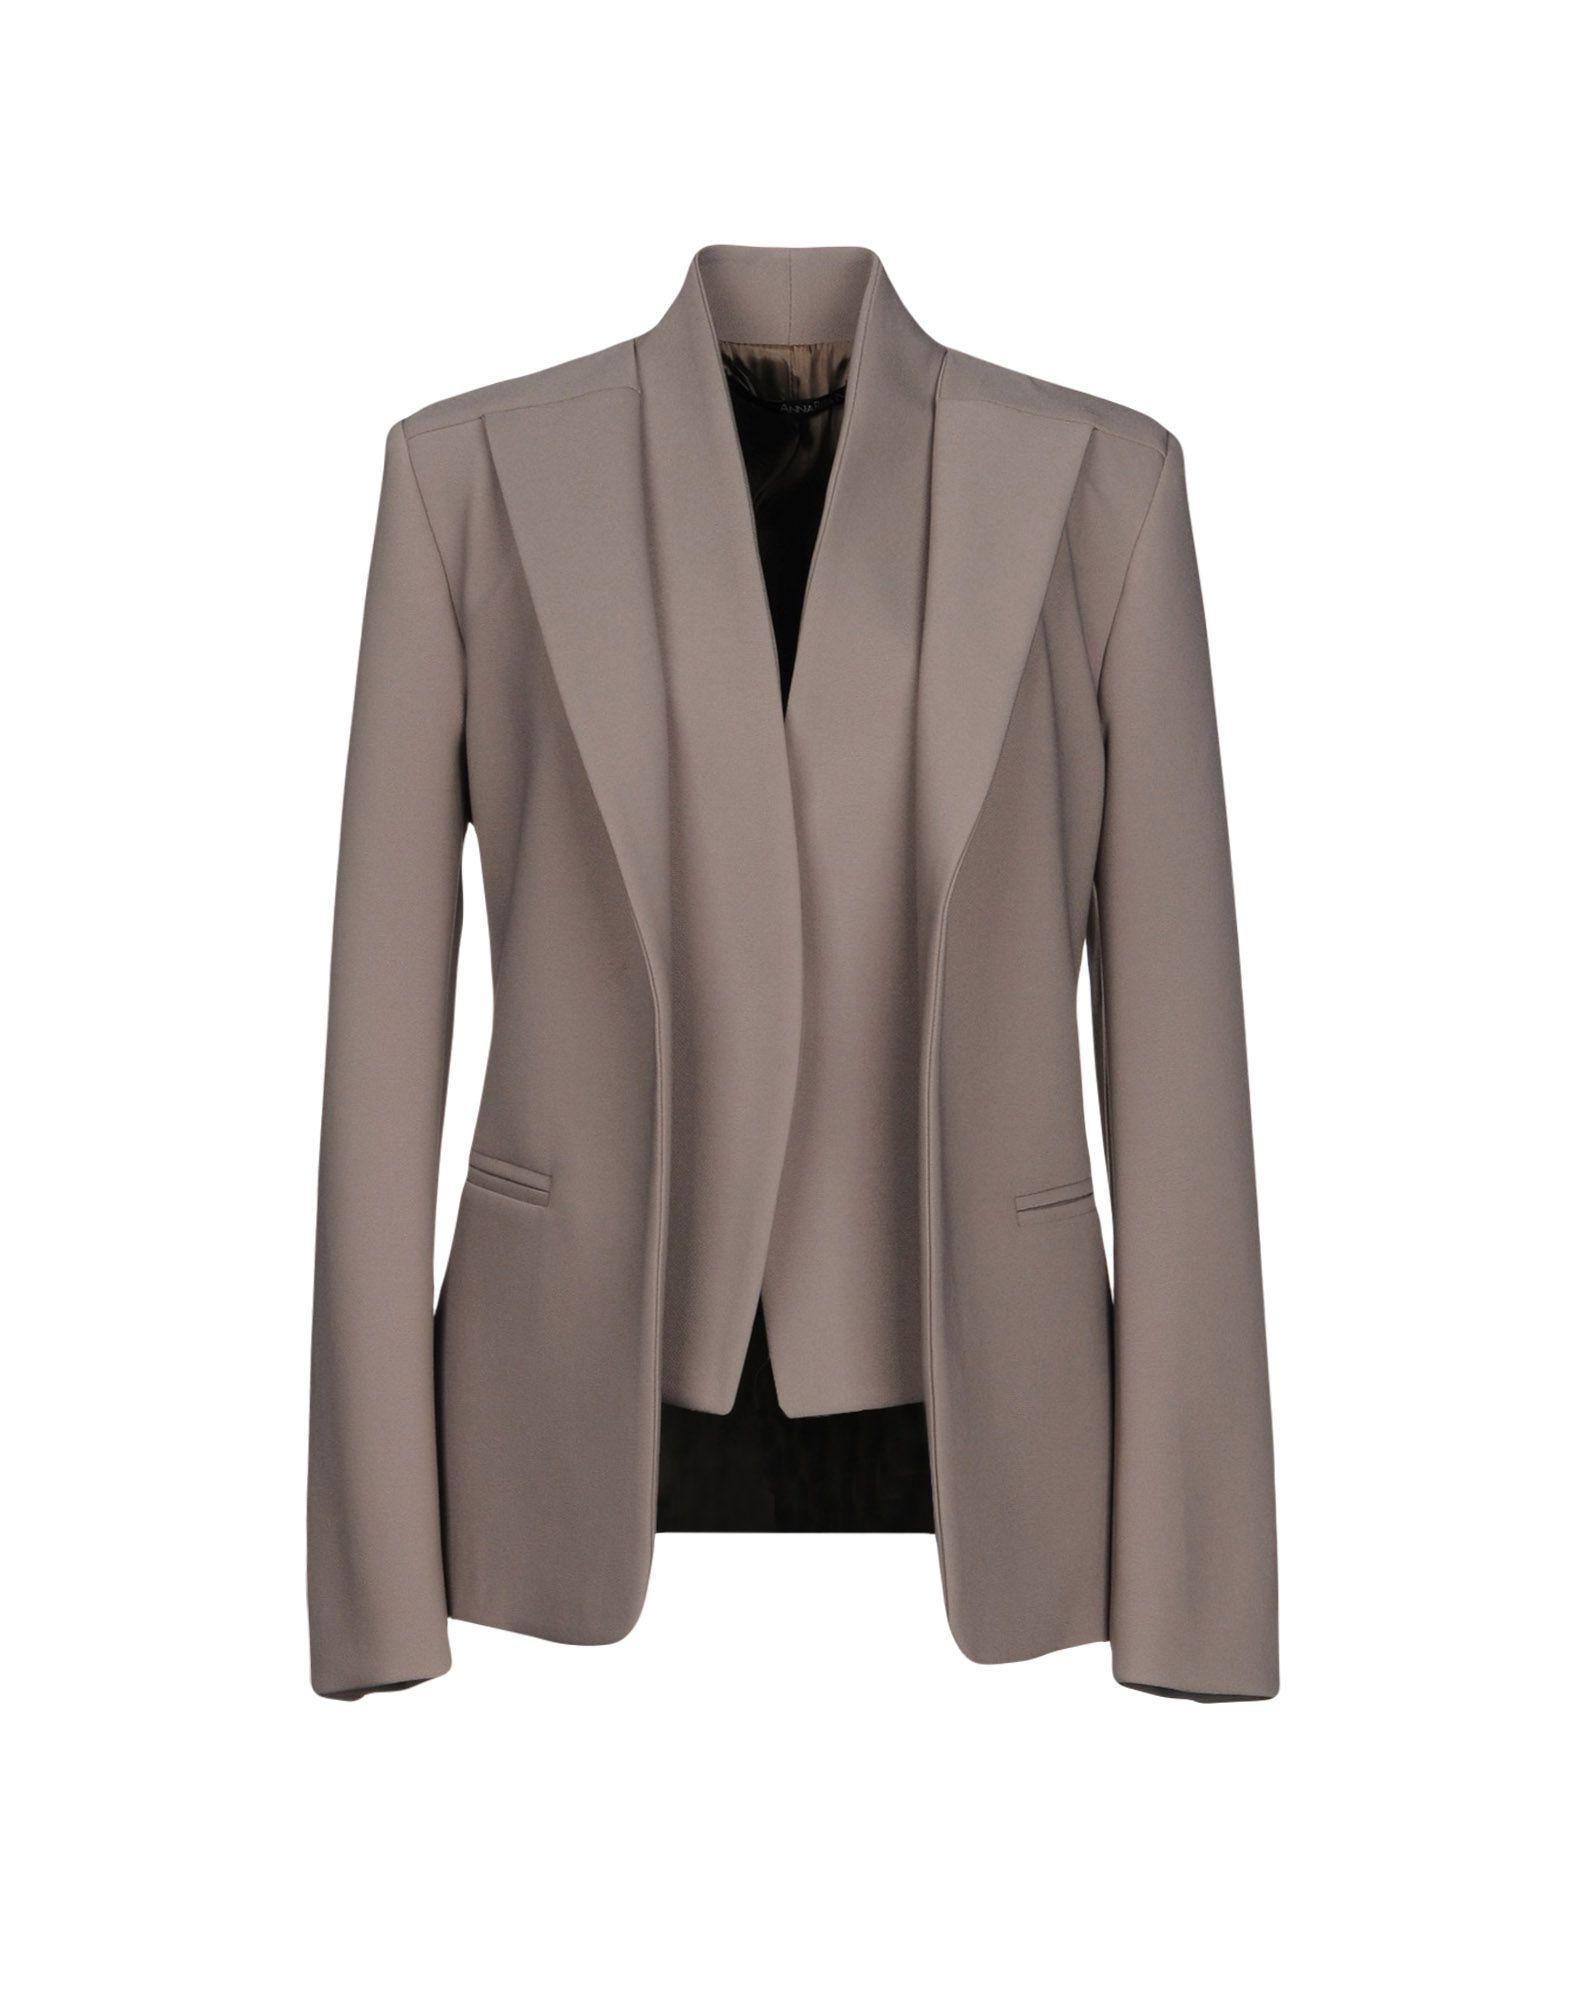 Cheap Sale New SUITS AND JACKETS - Blazers Annarita N. Free Shipping Best Sale Big Discount Sale Online Cheap Exclusive wgsHmM2cV